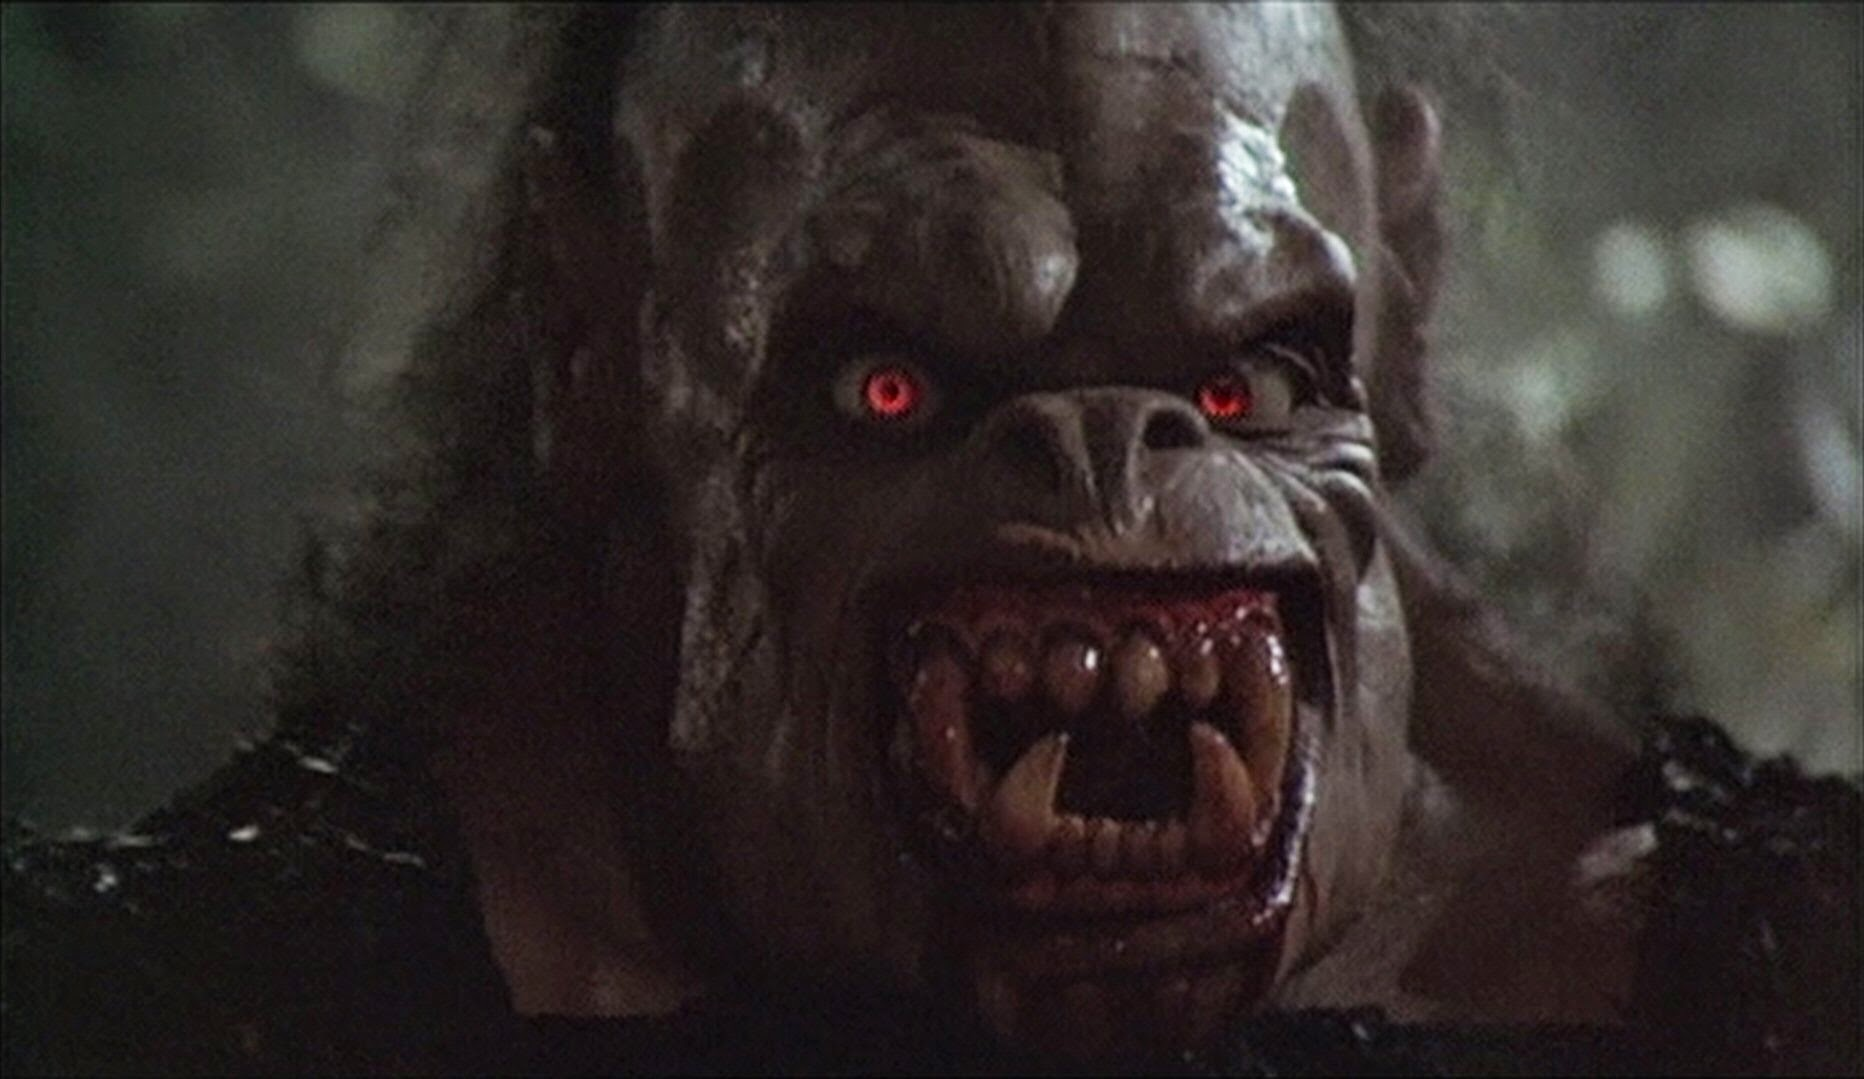 Cheap Cool Stuff >> DVD Exotica: RAWHEAD REX!!! Oh, and Transmutations, Too (DVD/ Blu-ray Comparison)